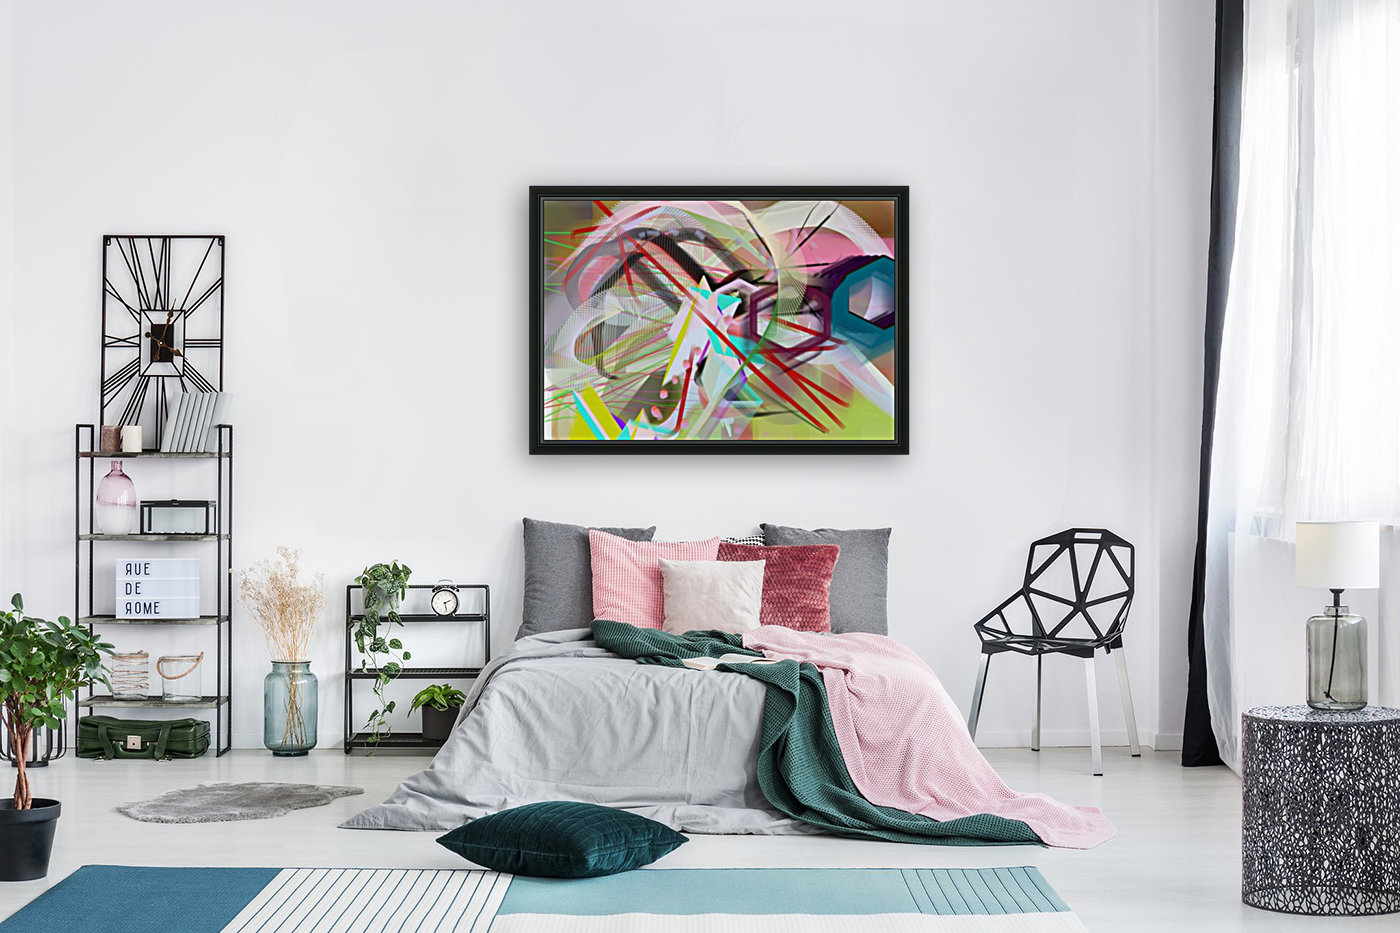 New Popular Beautiful Patterns Cool Design Best Abstract Art (2) with Floating Frame